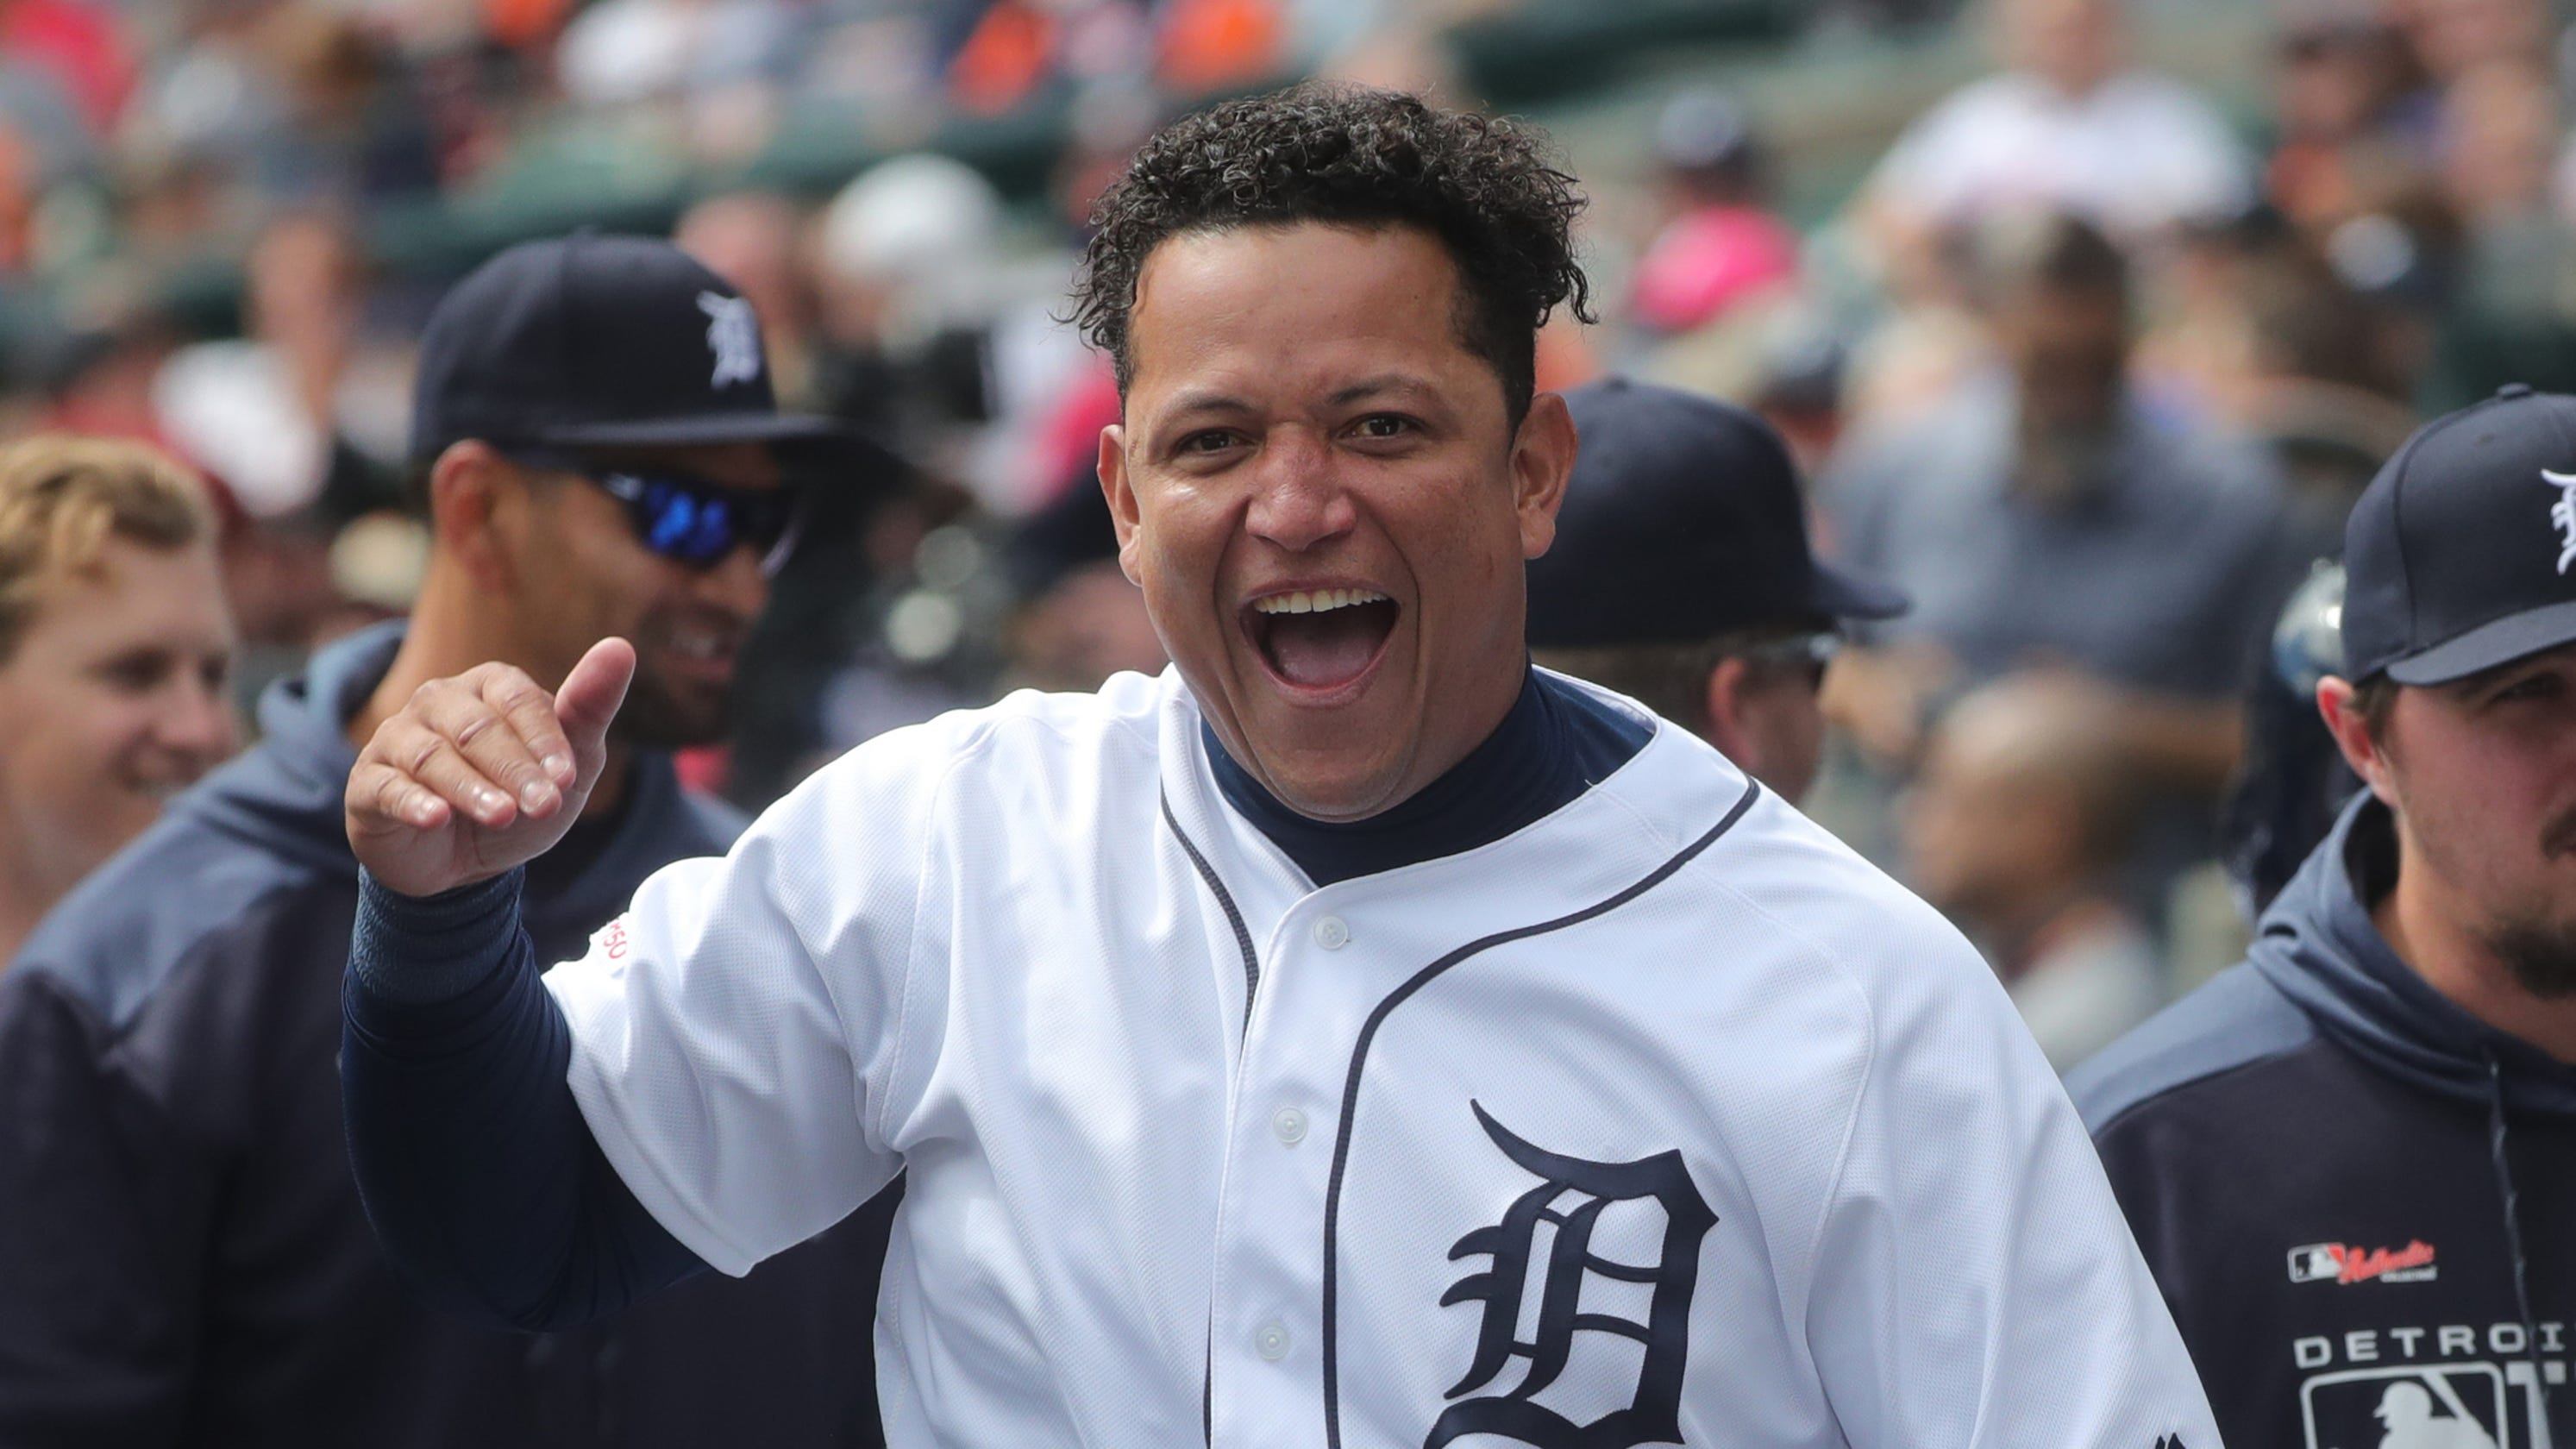 Judge: Miguel Cabrera's kids with ex-mistress must share good fortune